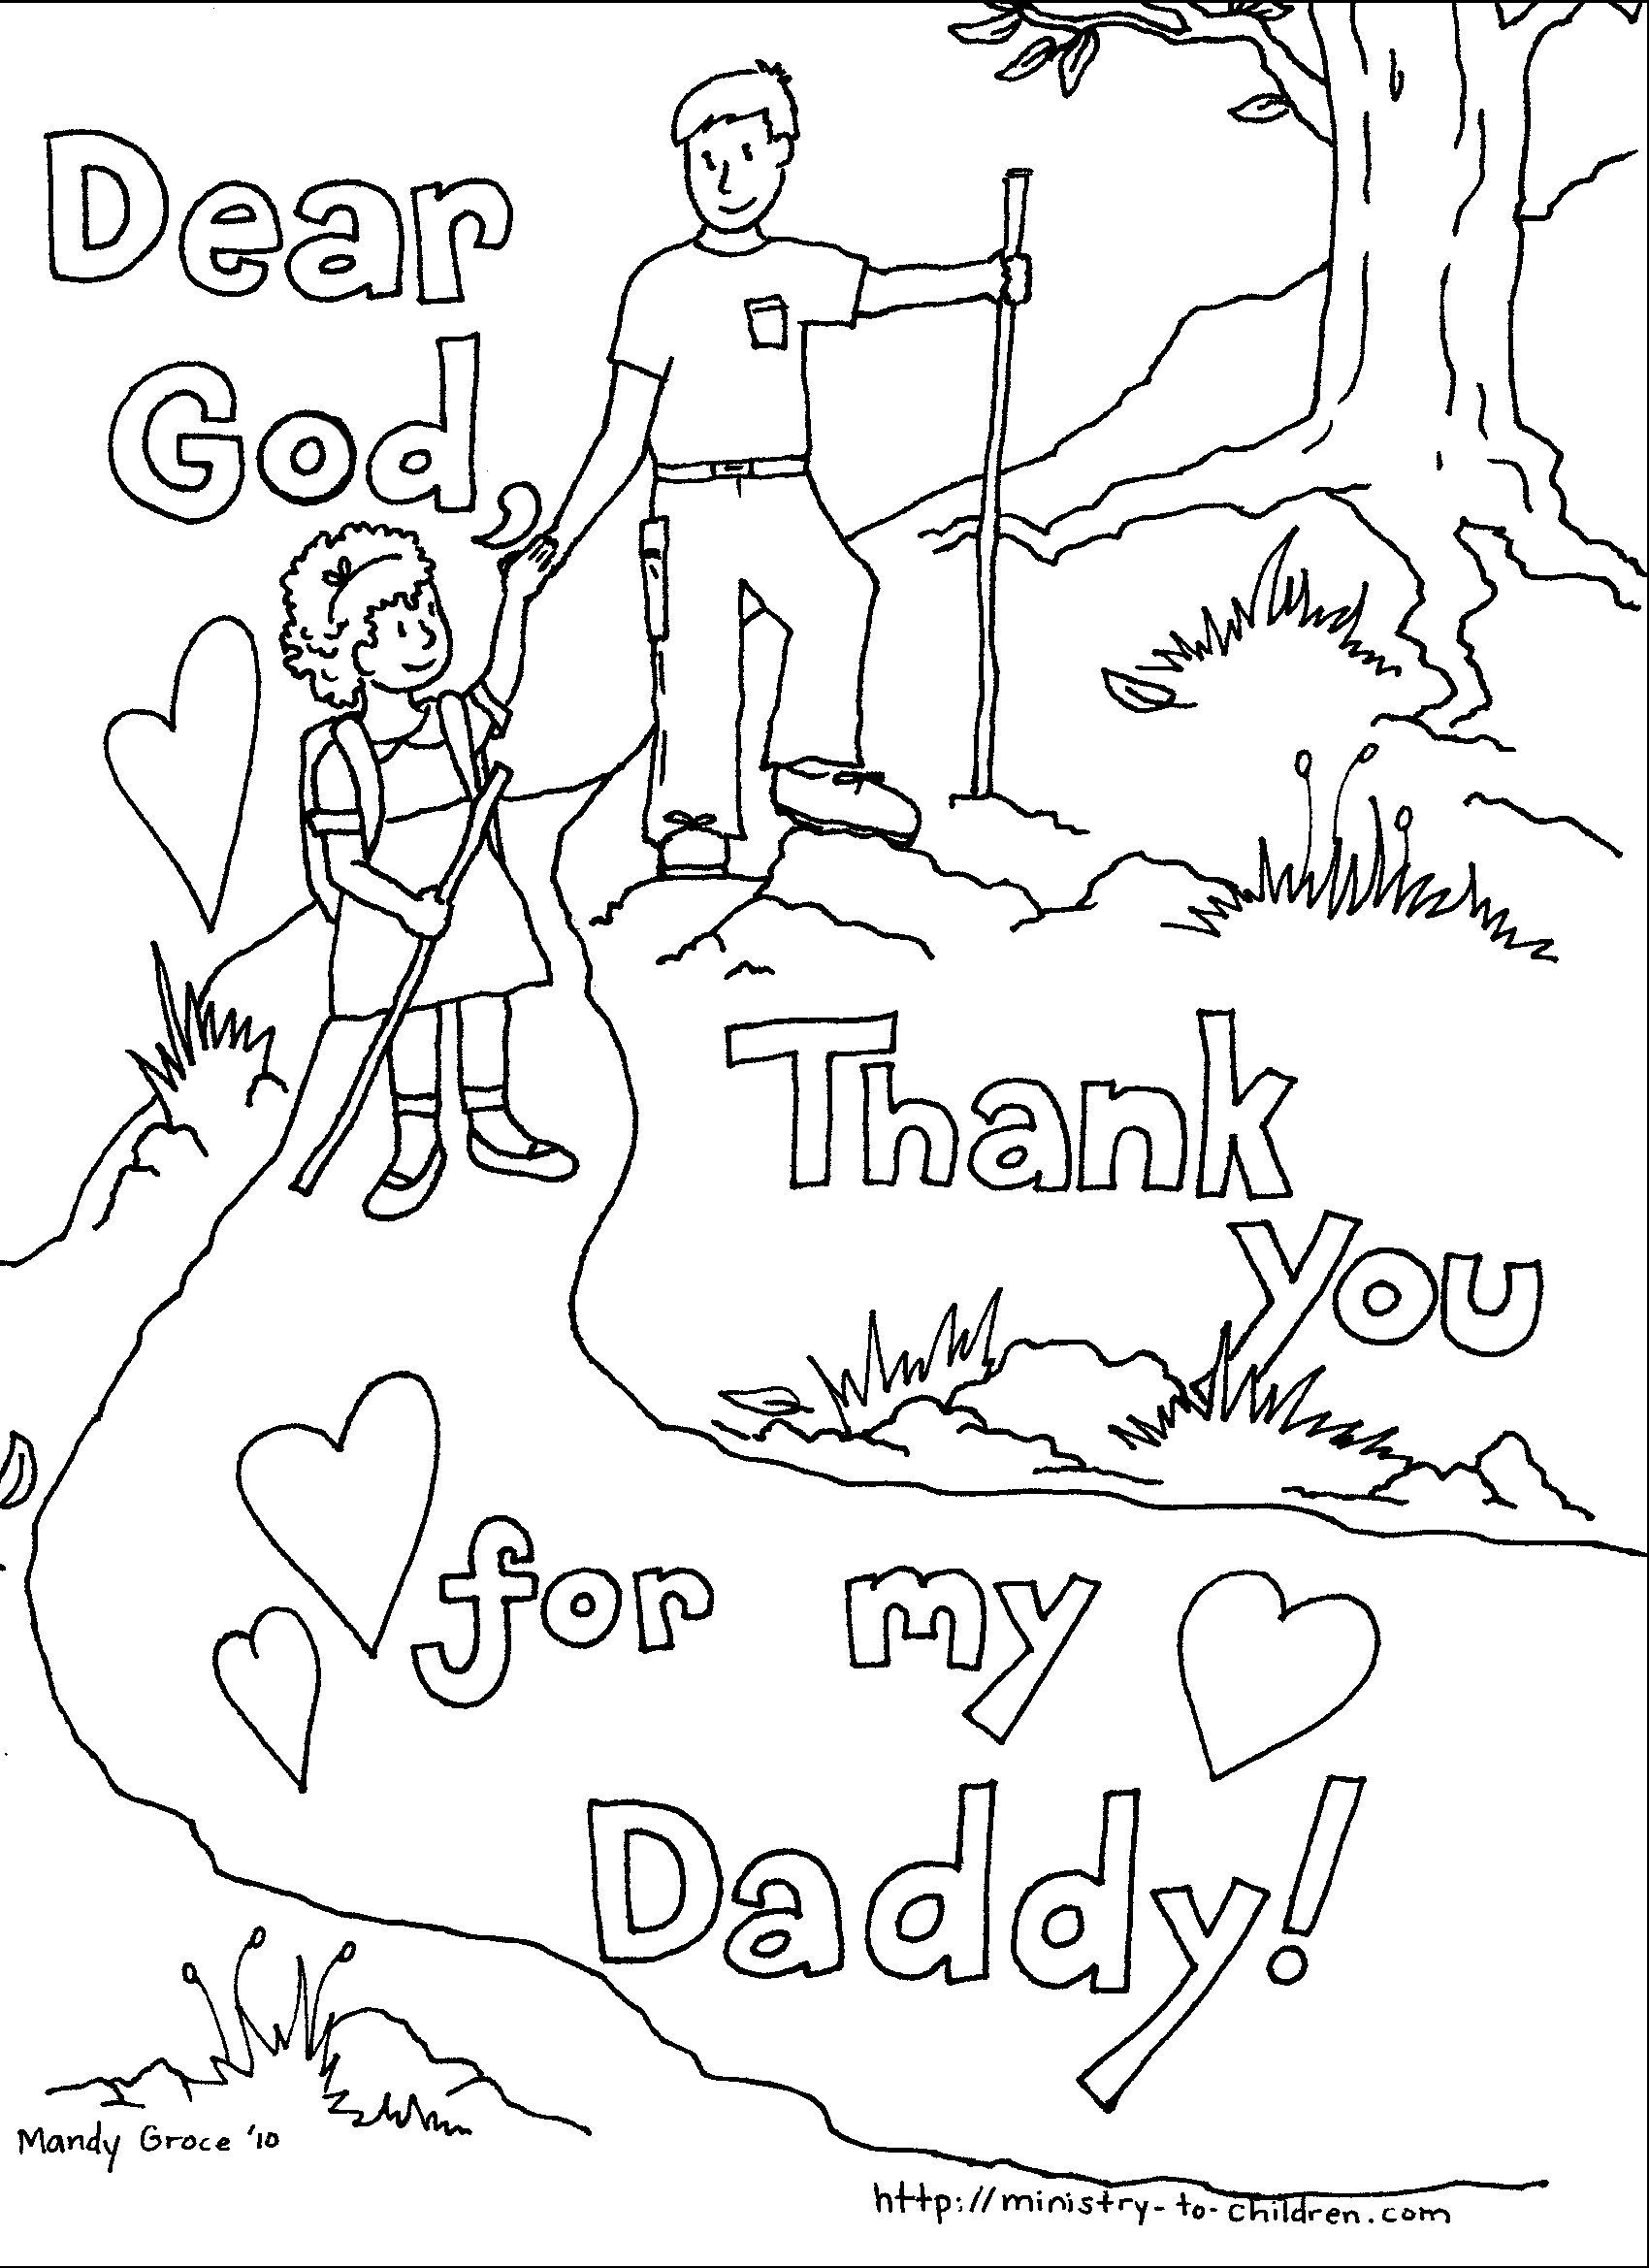 Fathers Day Coloring Pages To Print - Free Large Images